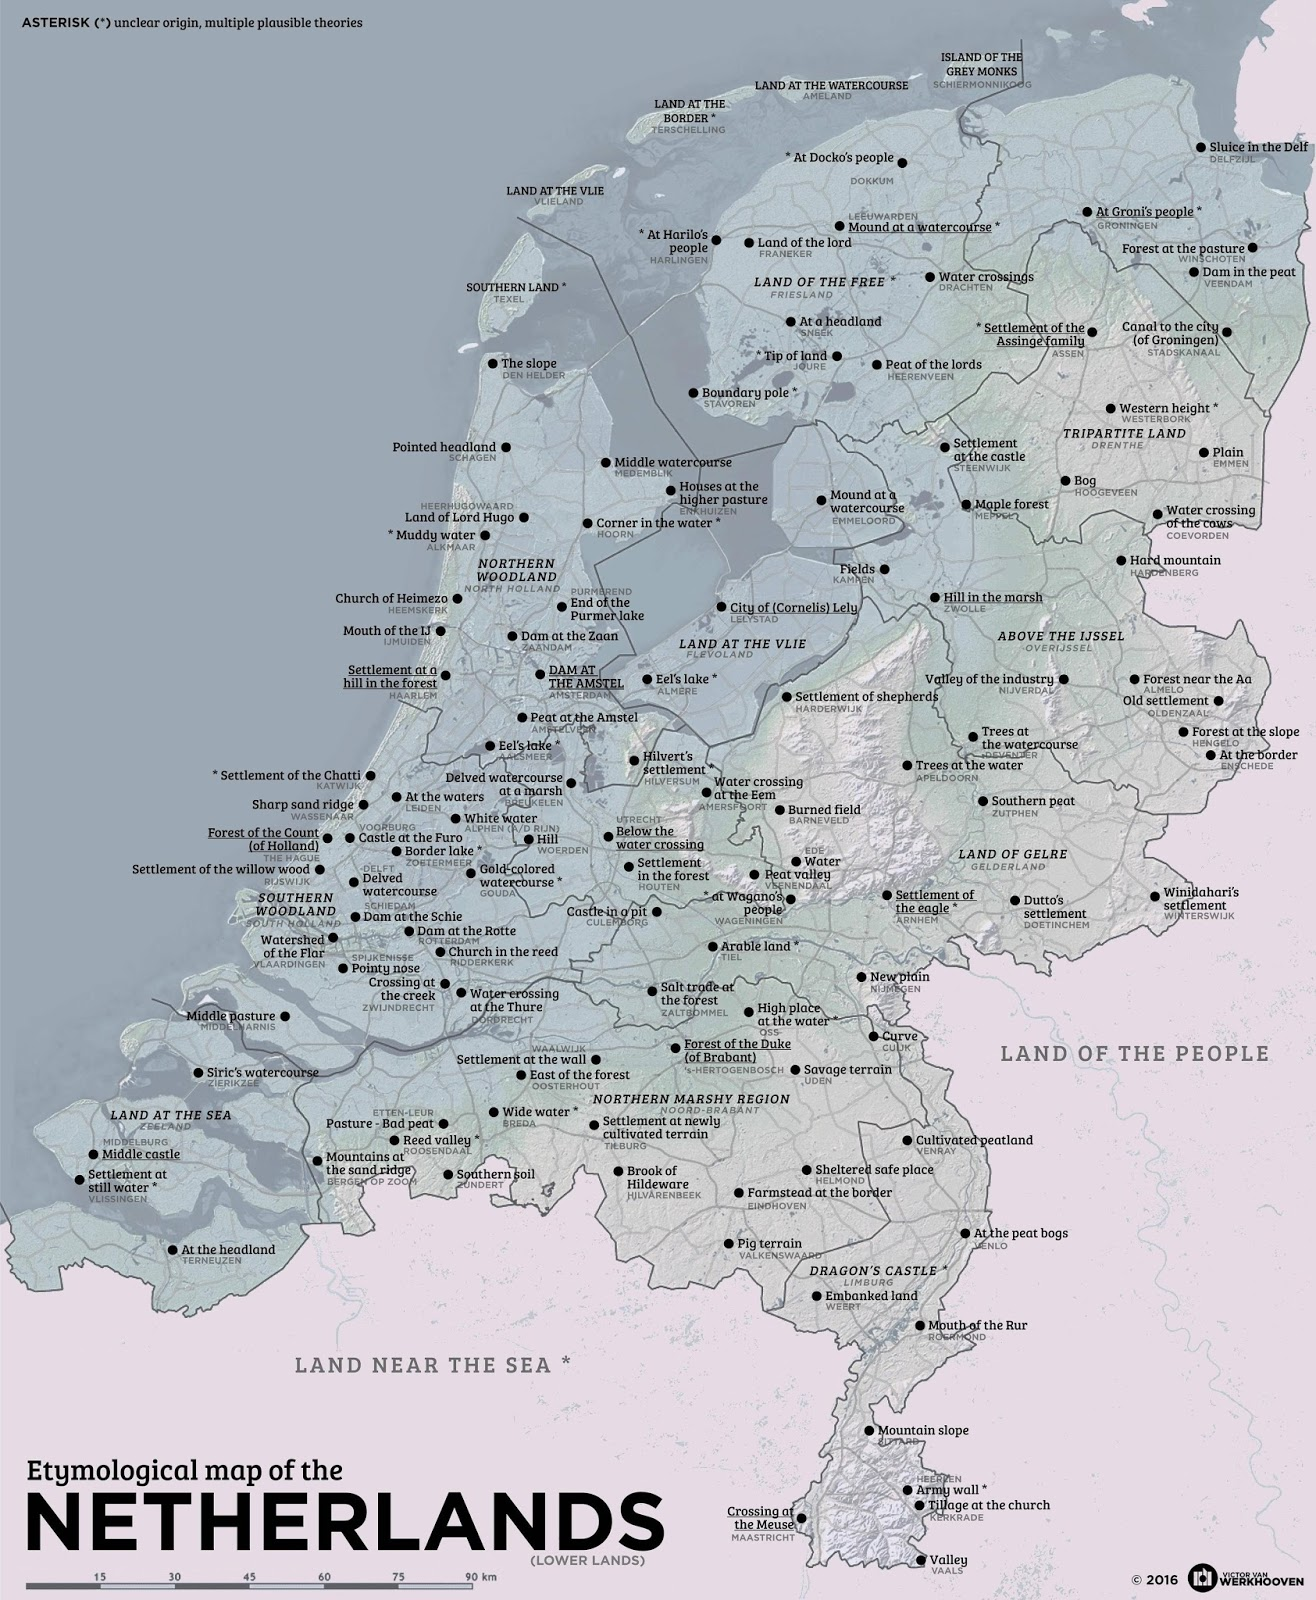 Etymological map of the Netherlands